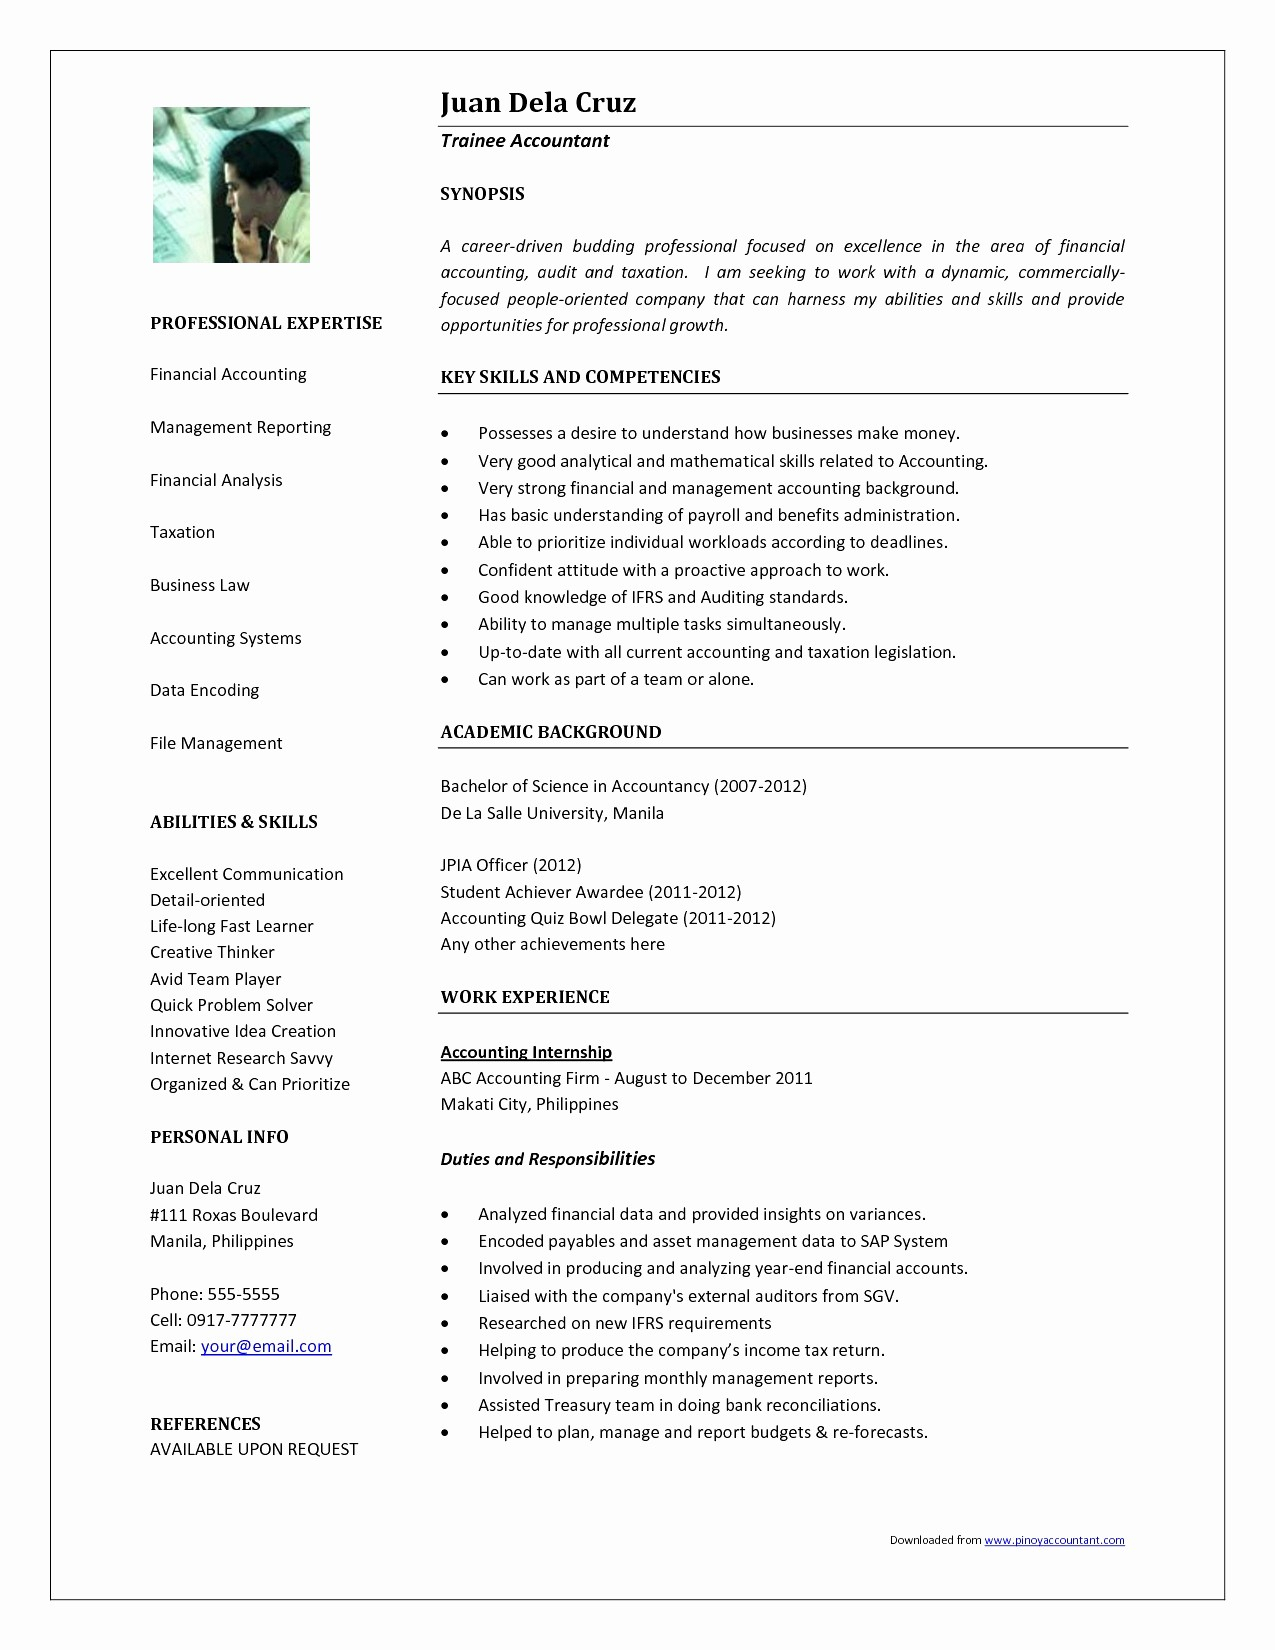 Letter Of Understanding Template - Inspirational Letter Understanding Template